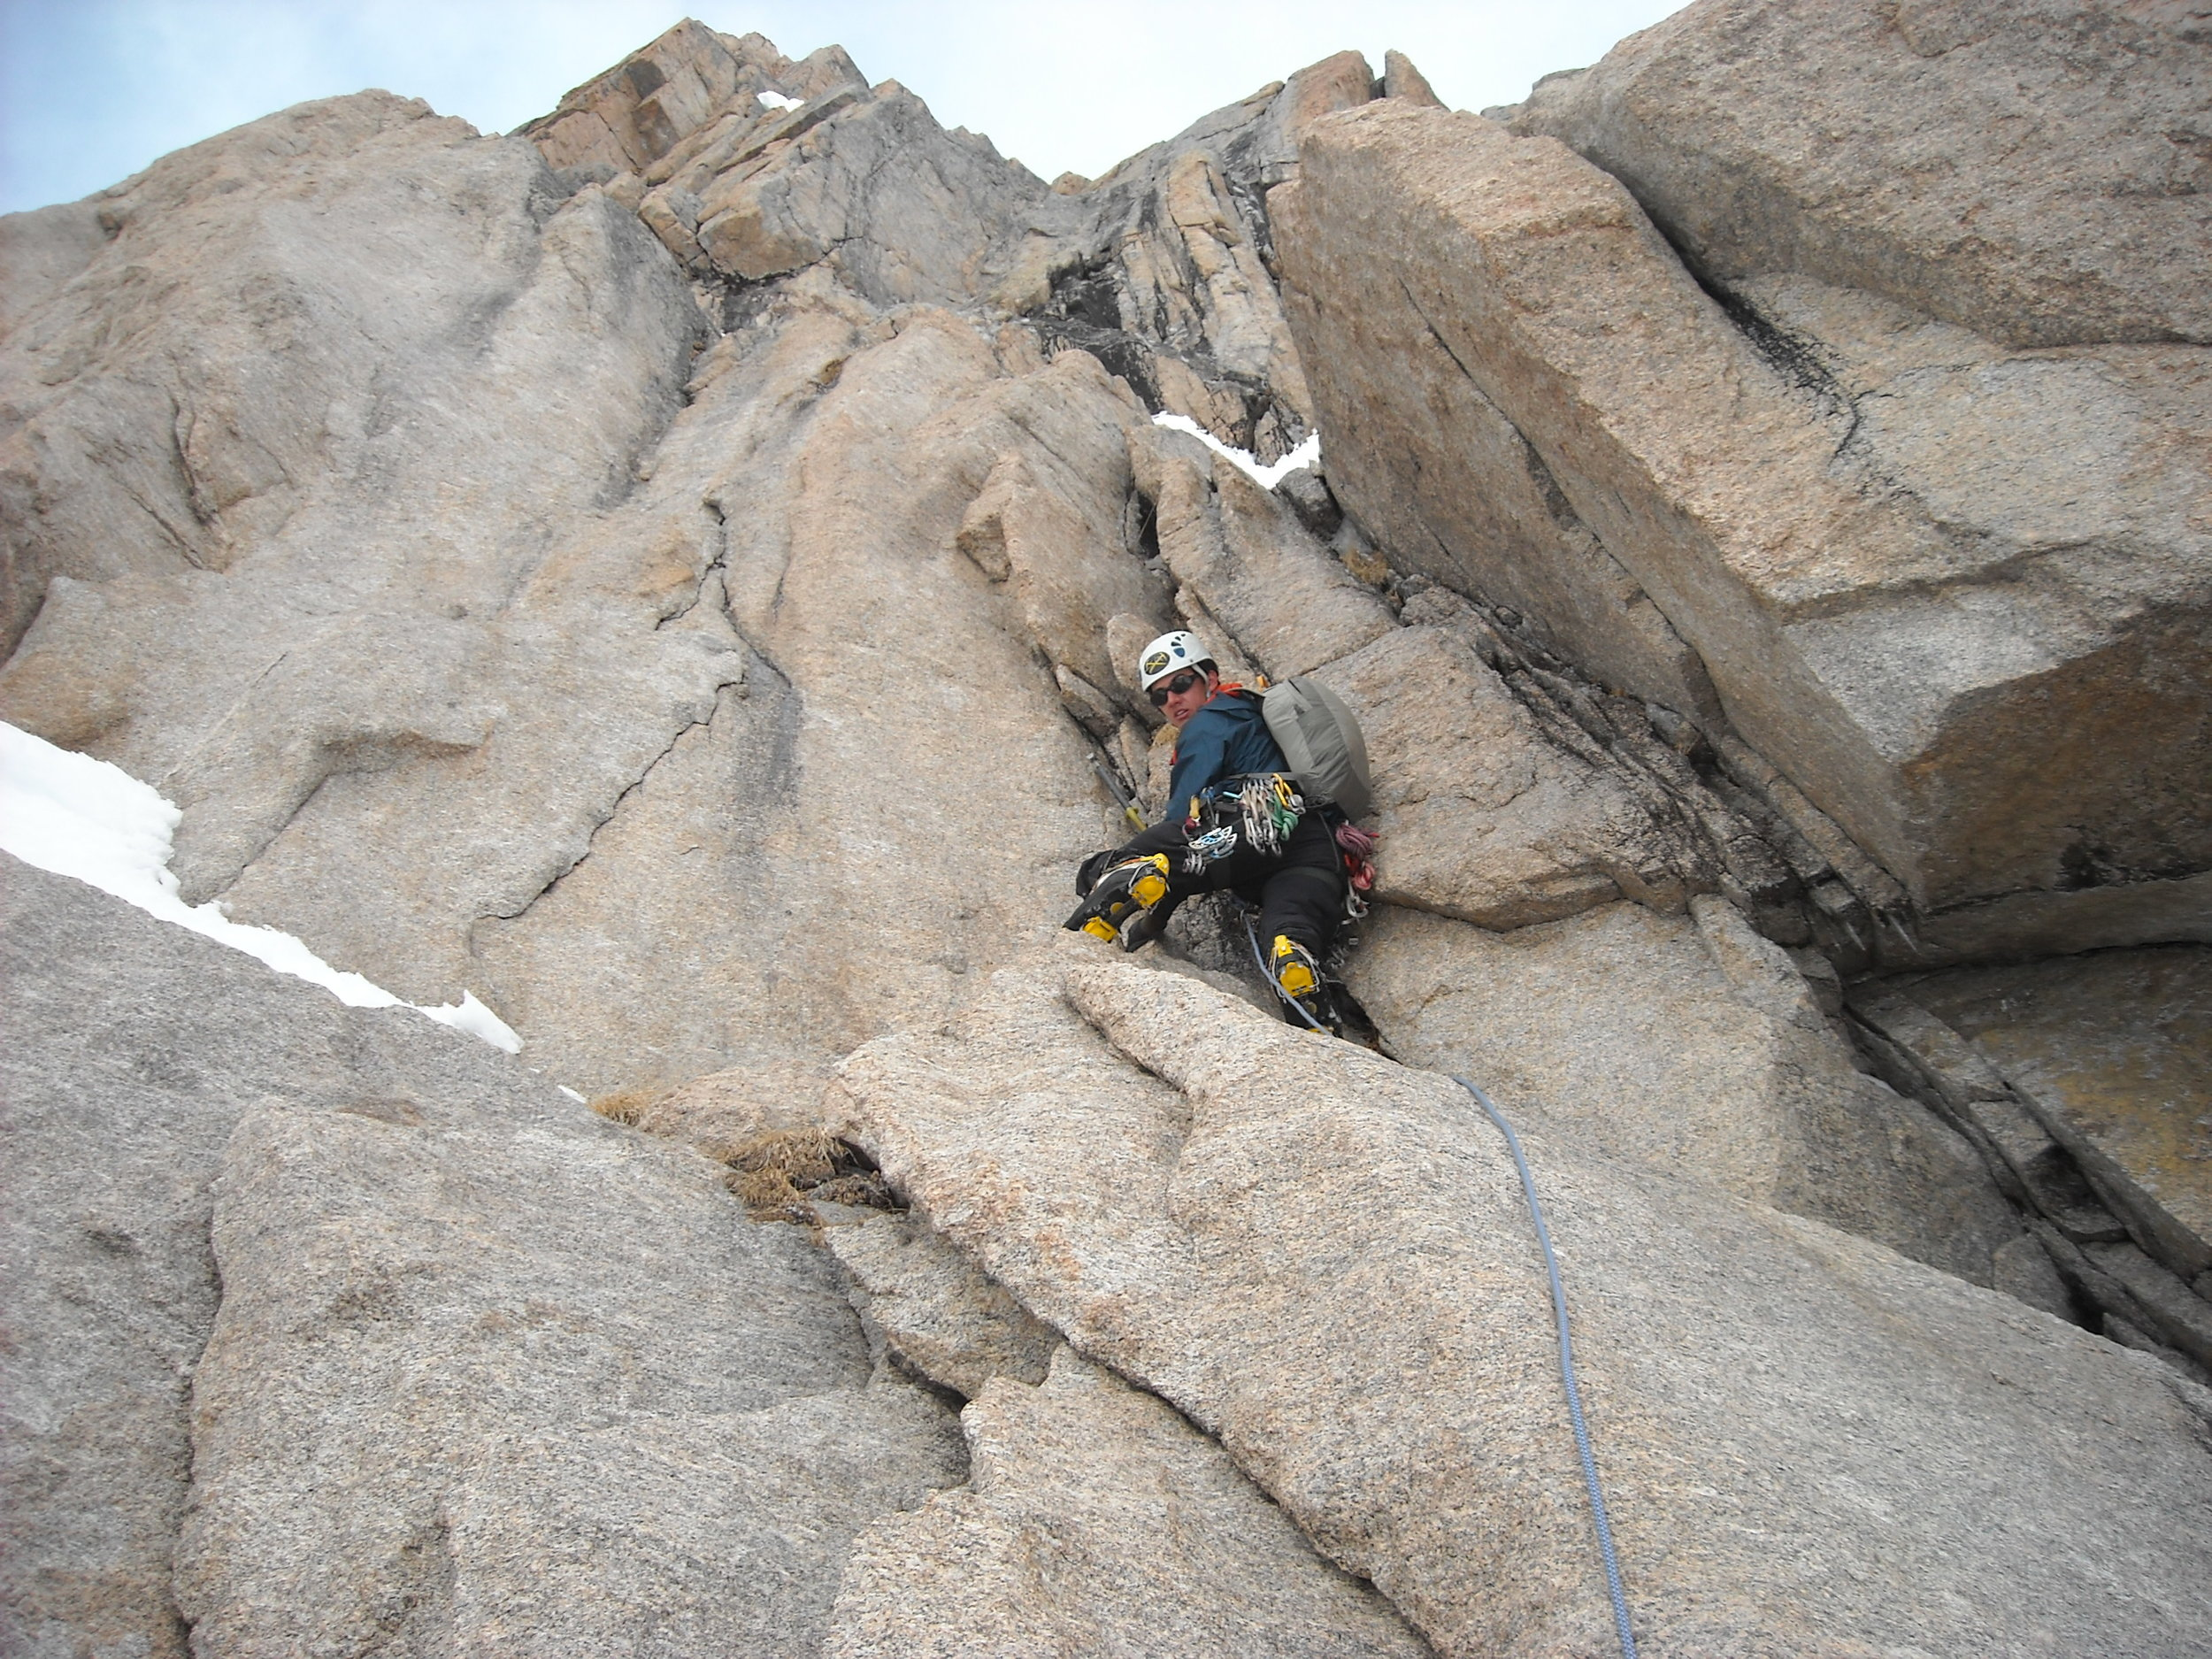 Buster leading the 1st pitch M6 crux